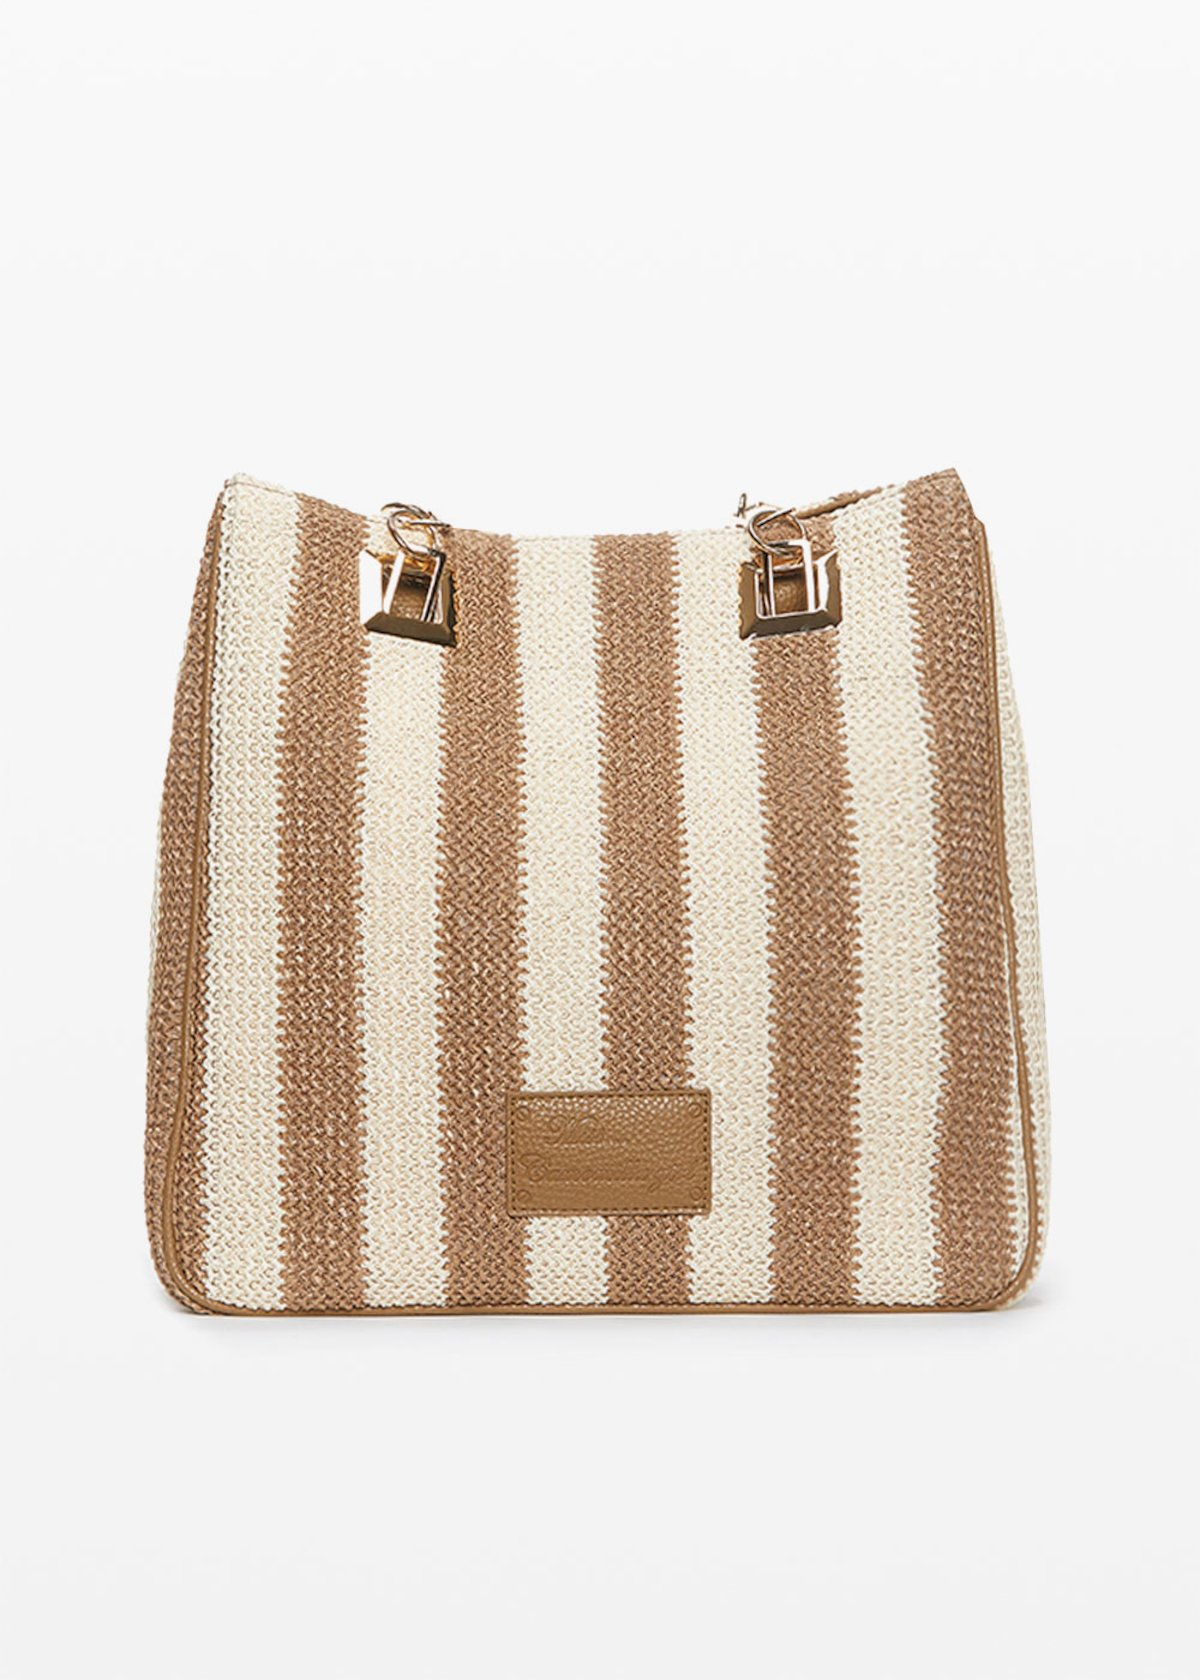 Borsa Mini miss stripes con fantasia righe a contrasto - Desert / White Stripes - Donna - Immagine categoria